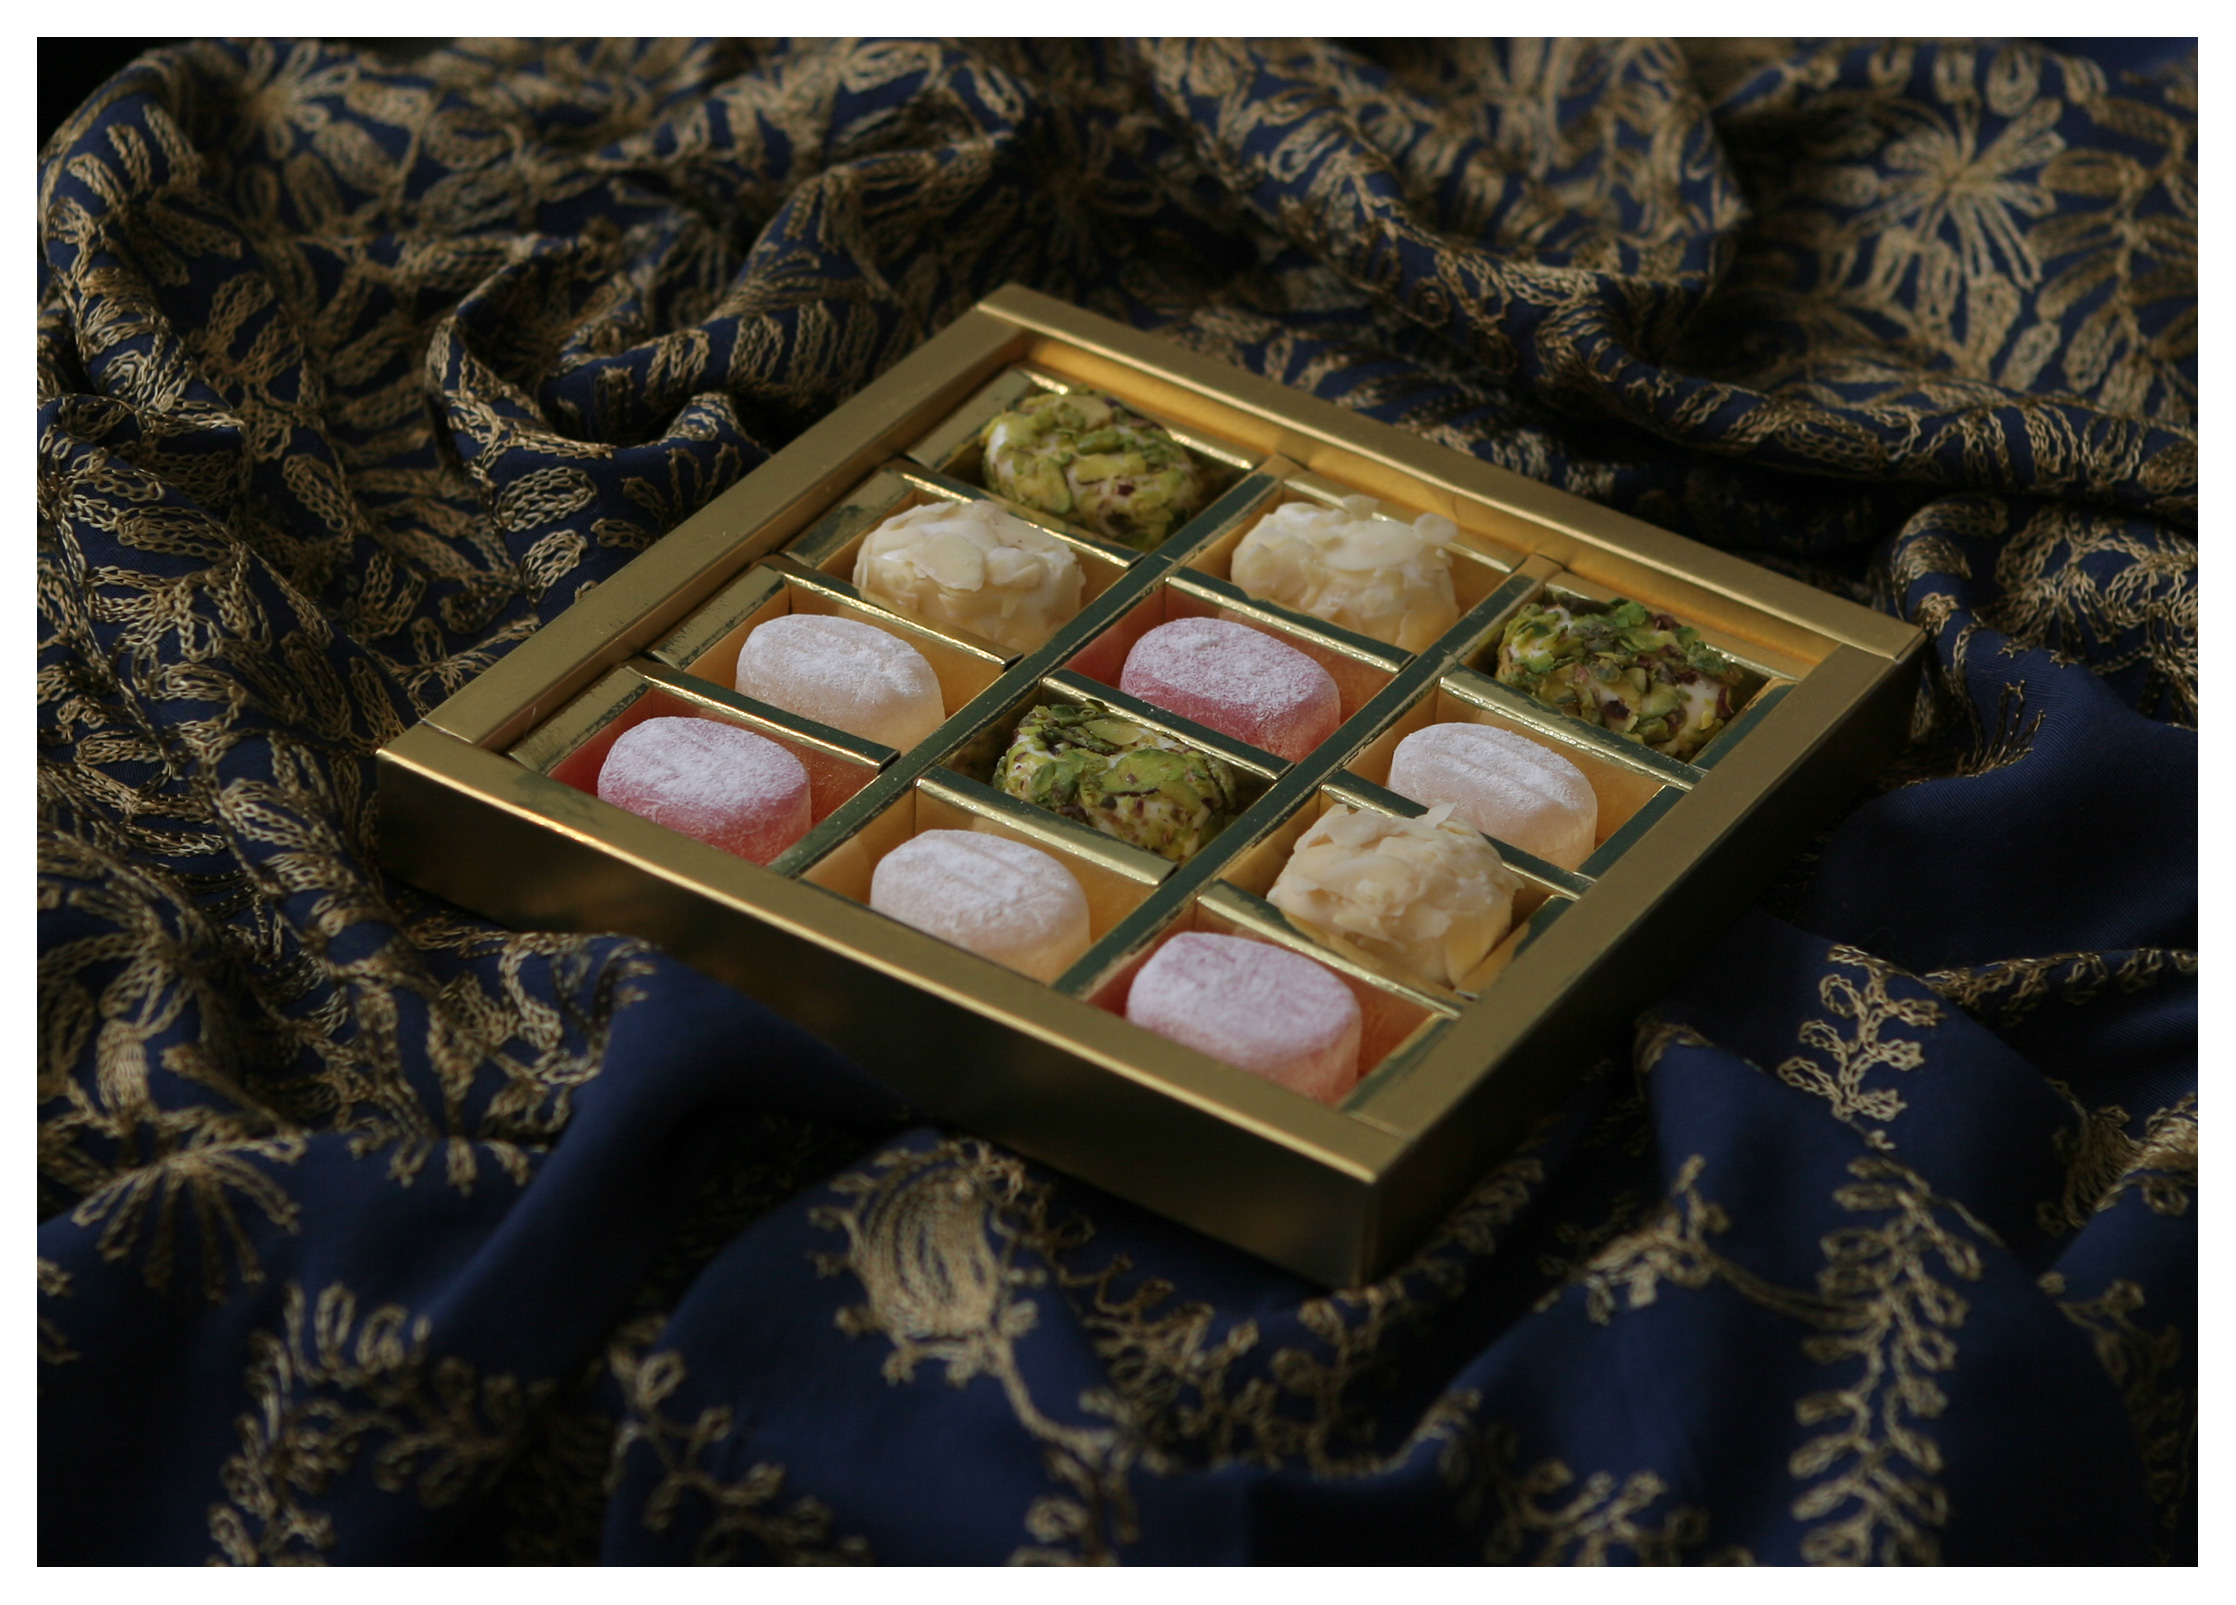 Food as product photography: Turkish delight in luxury packaging